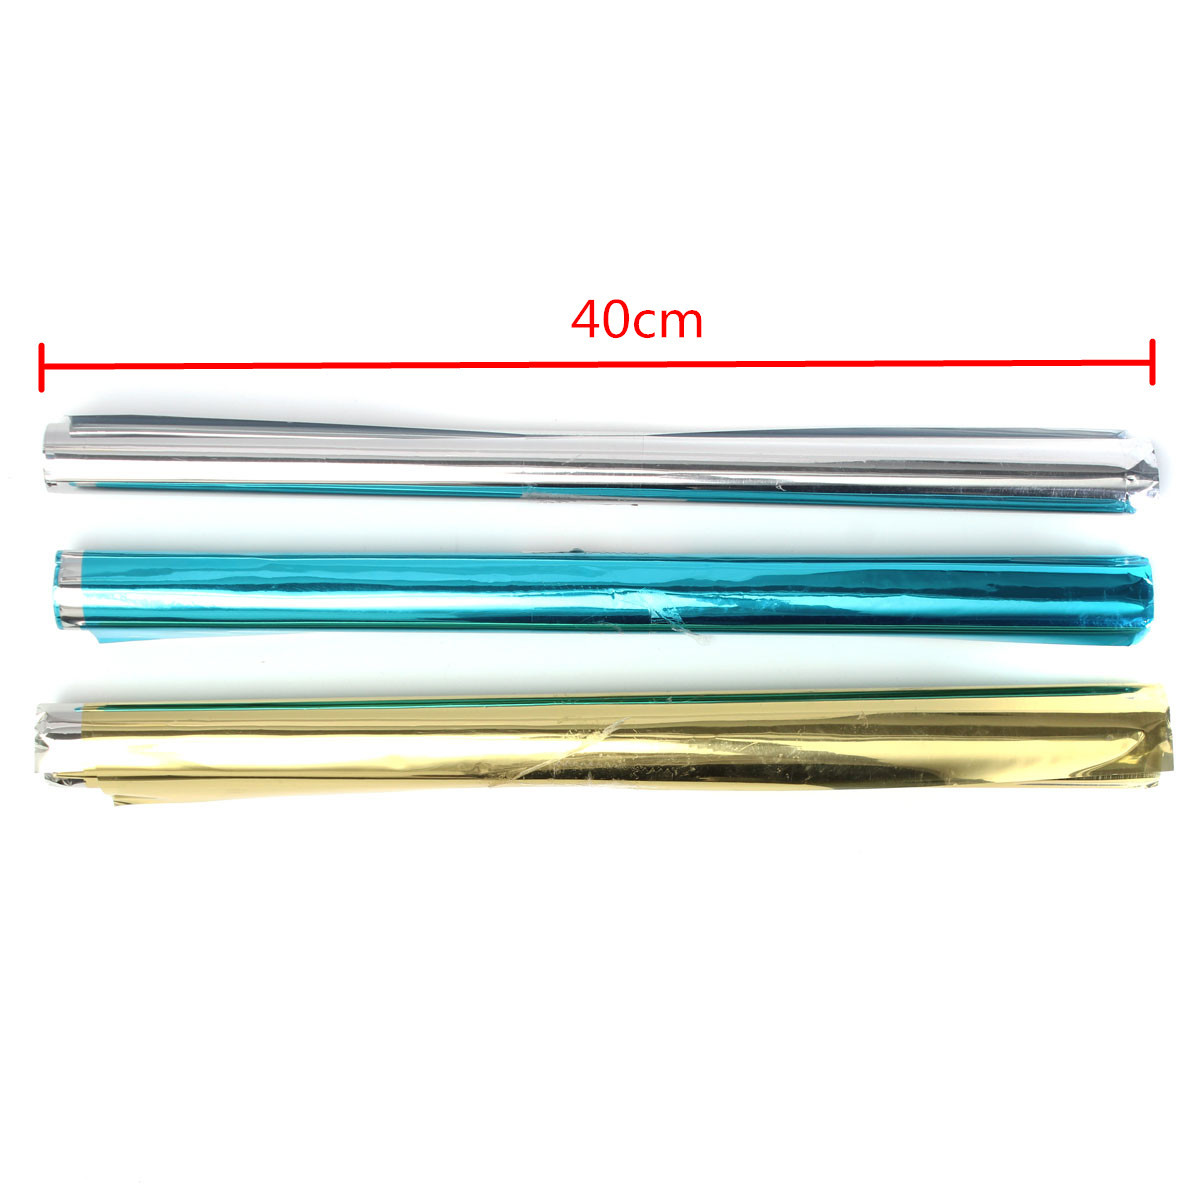 40mm Reflective Mirror Window Grass Film Tint Self Adhesive Sticky Sticker